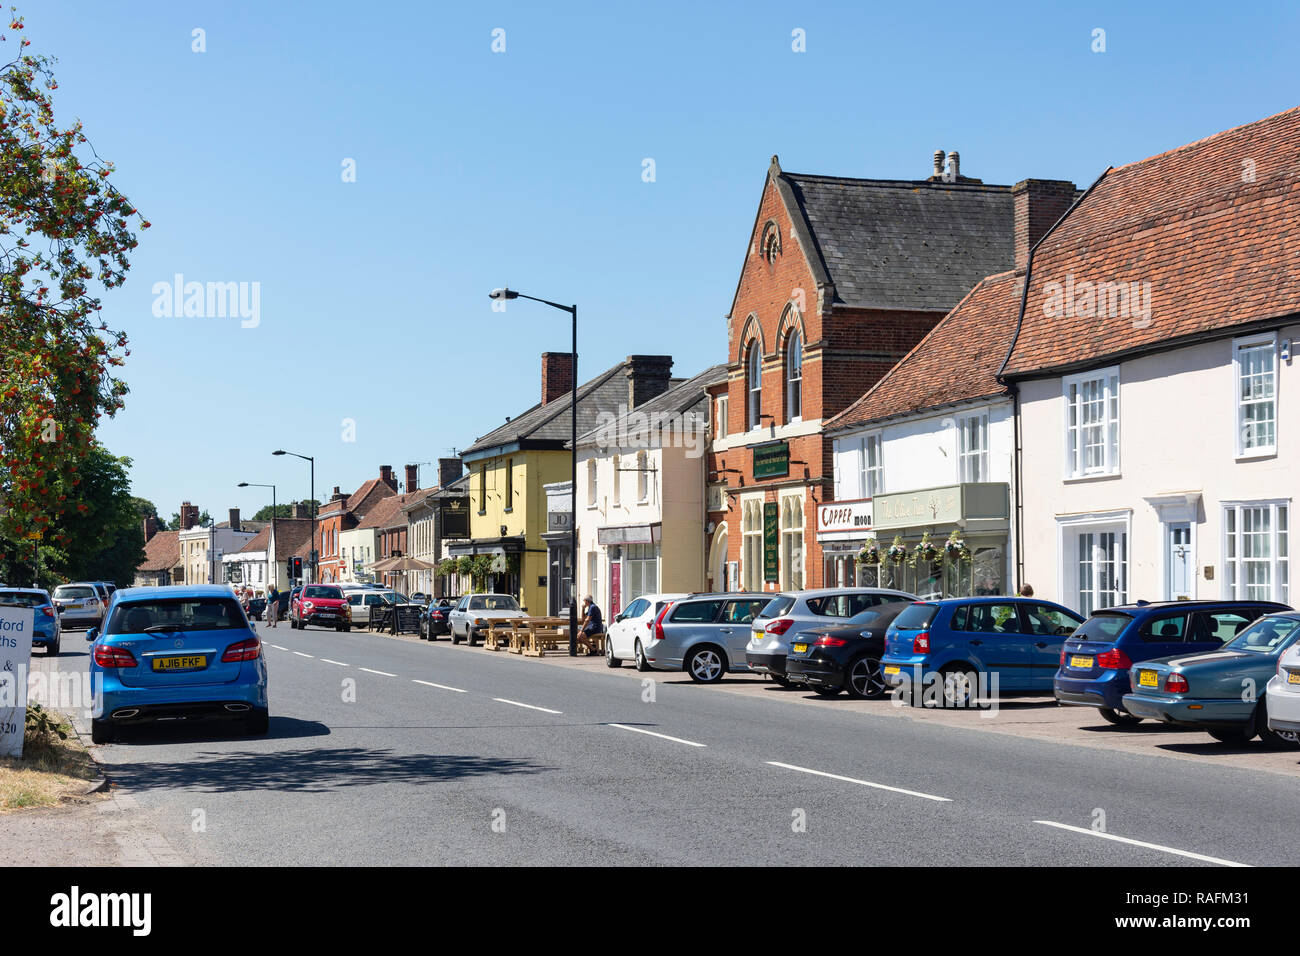 Hall Street, Long Melford, Suffolk, England, United Kingdom - Stock Image